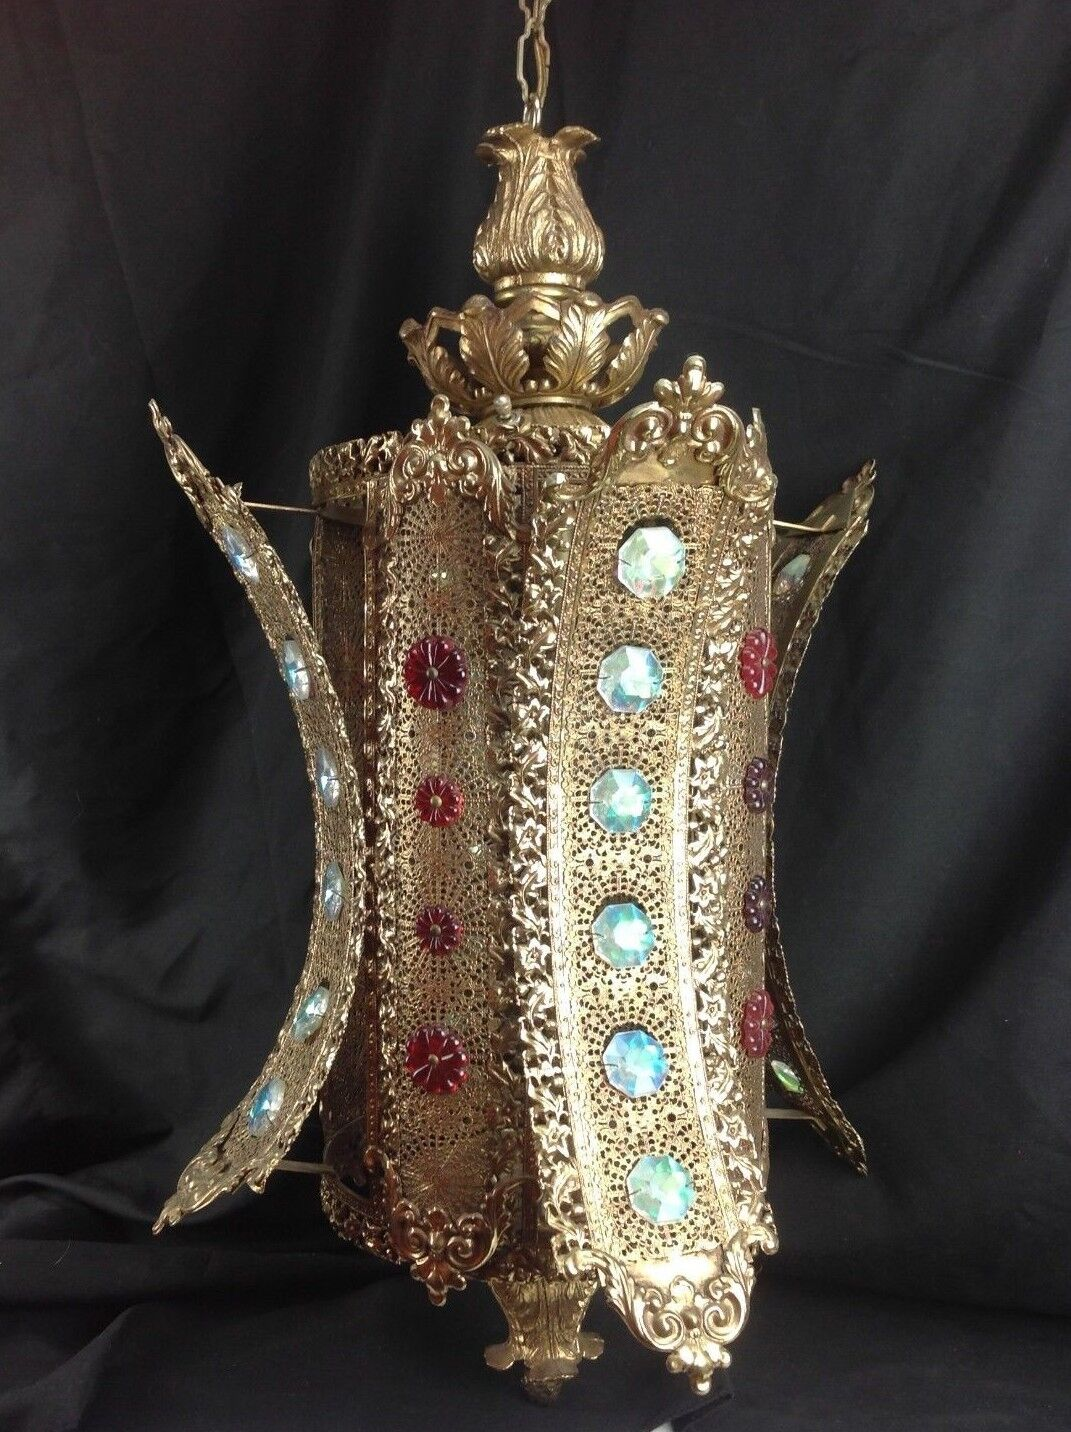 Vtg Gold Metal Filigree MGoldccan Boho Asian Jeweled Hanging Swag Lamp Light Art